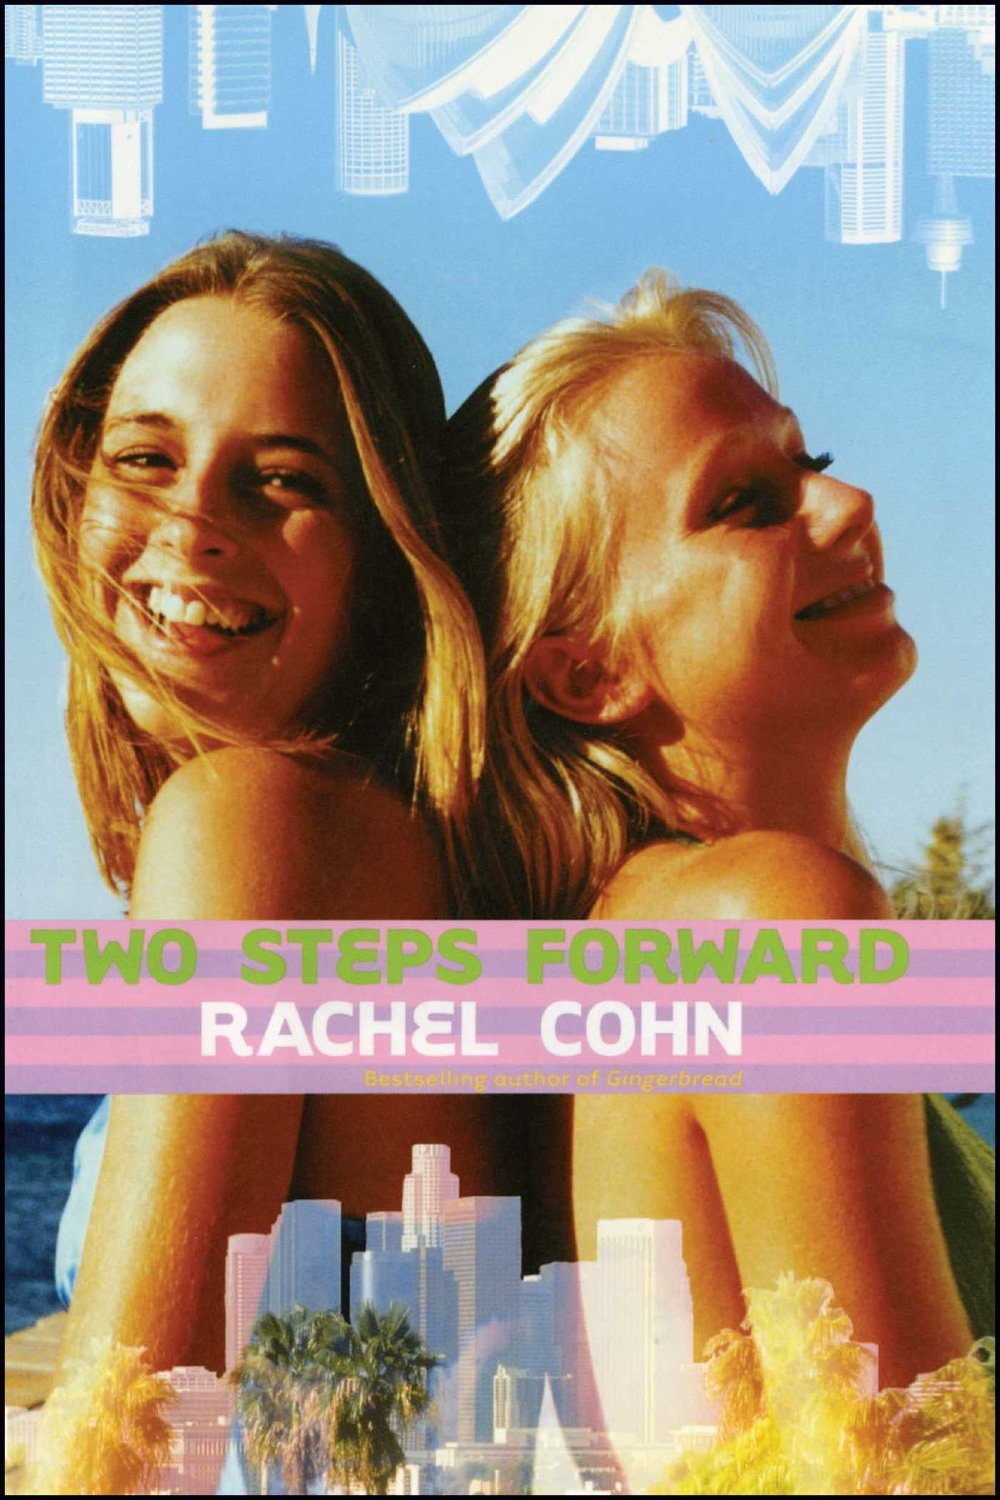 rachel-cohn-two-steps-forward.jpg